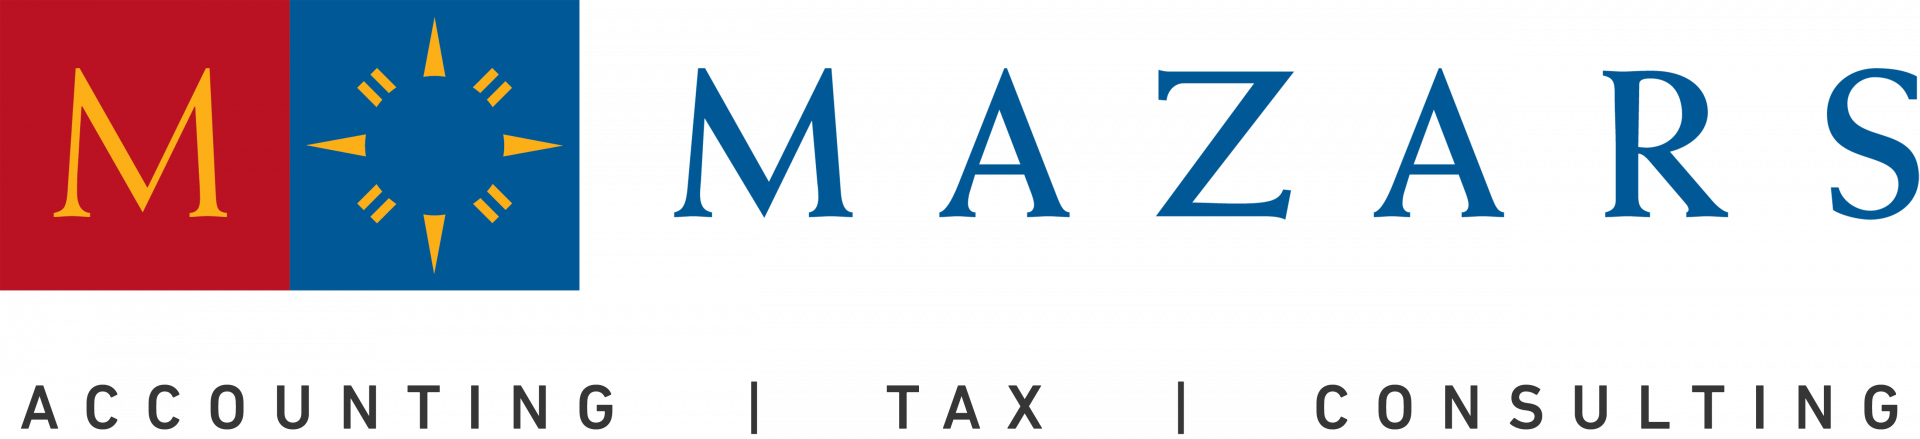 Mazars - Color - Accounting Tax Consulting - clear